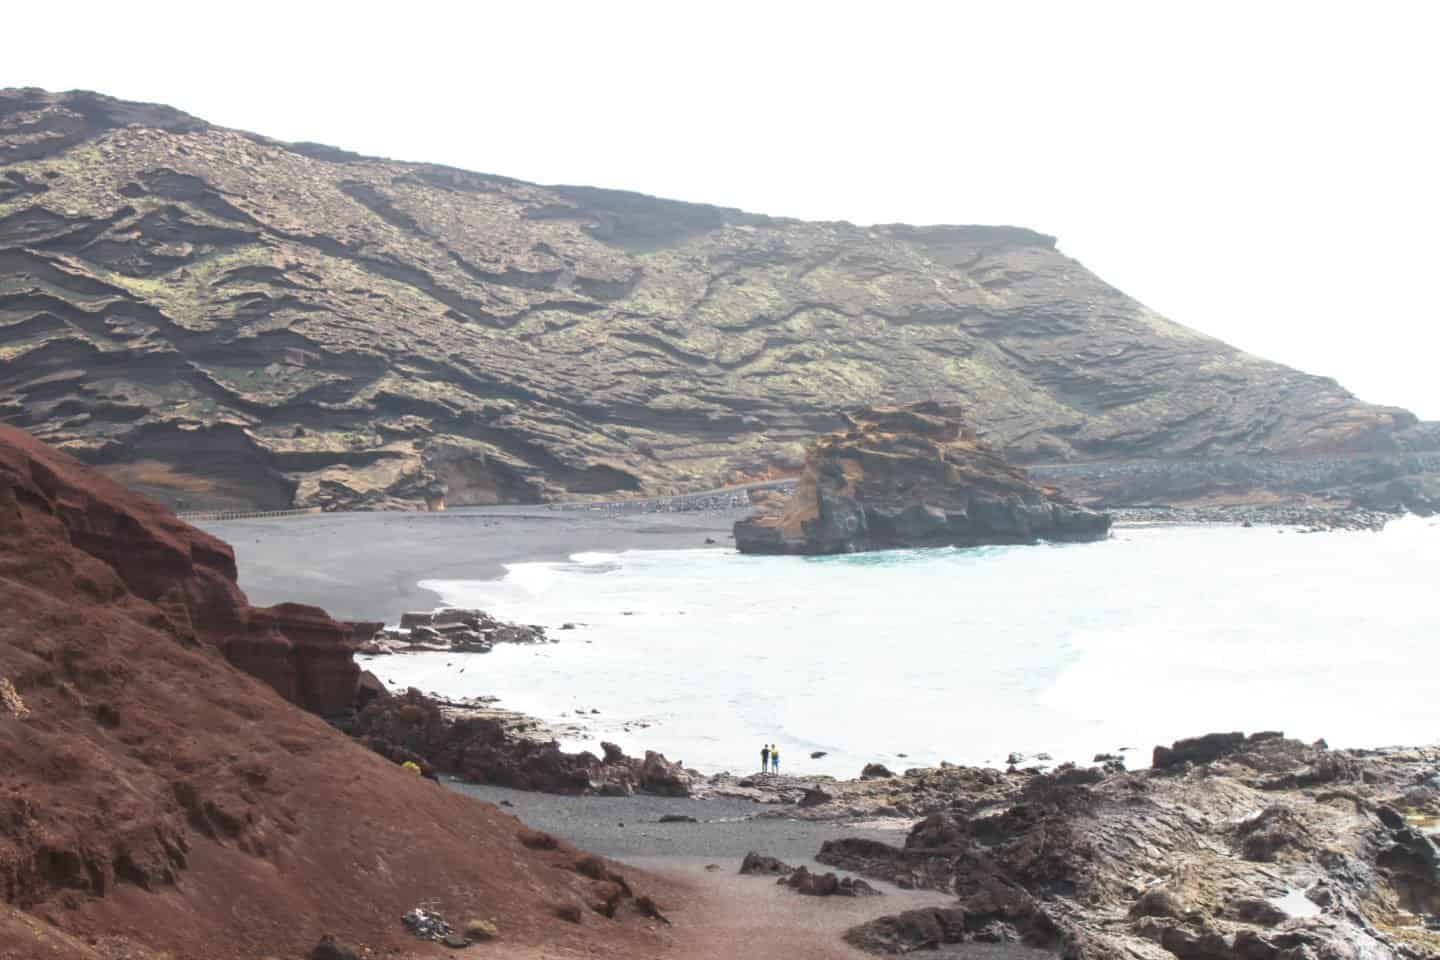 Black sand beaches in Lanzarote